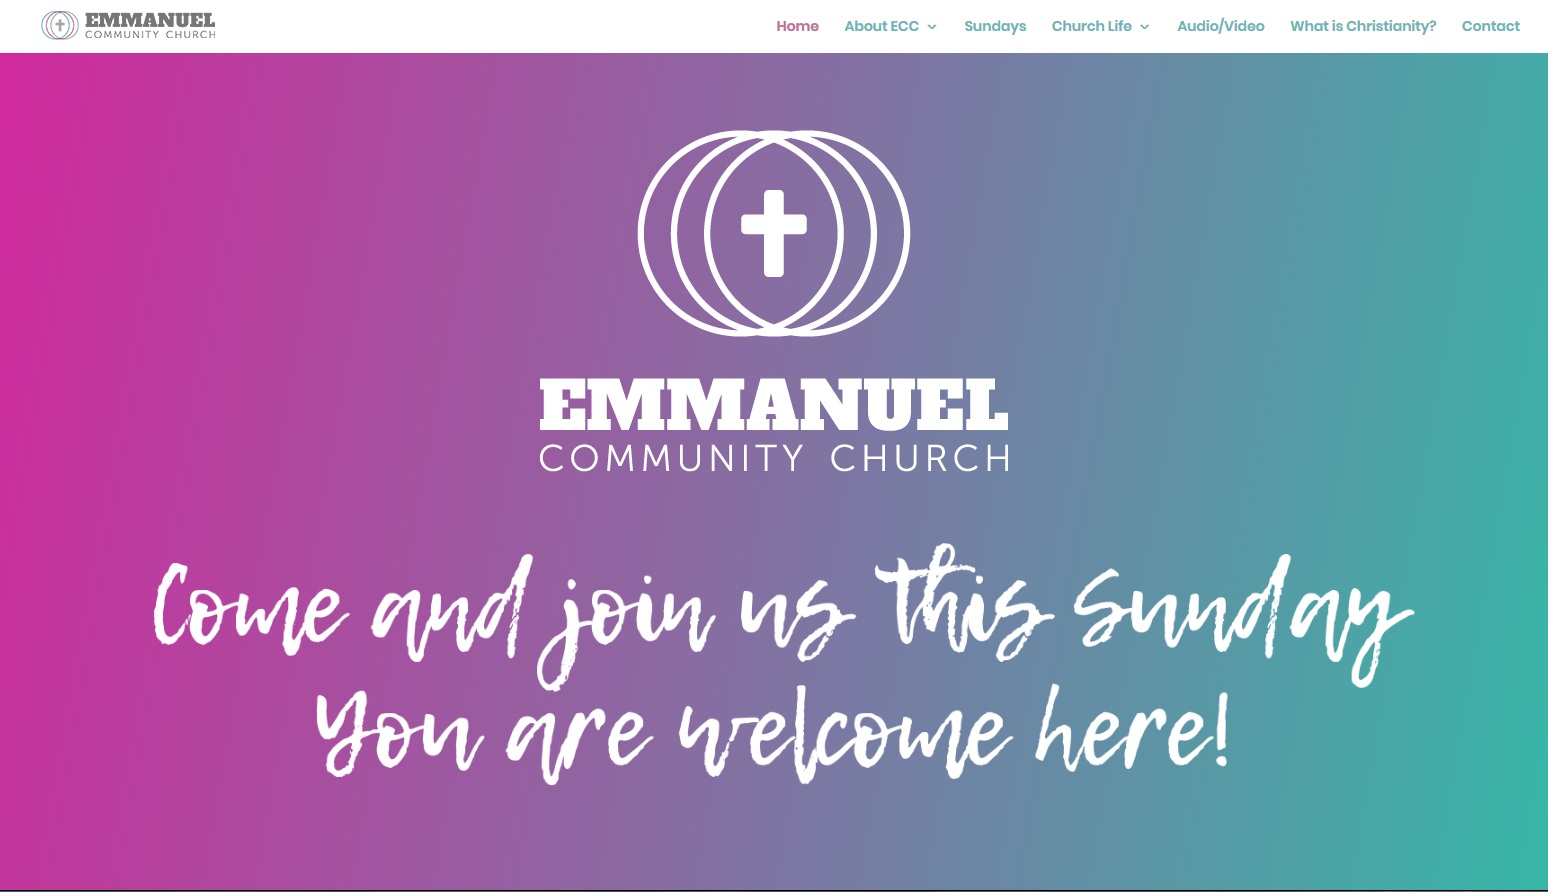 Emmanuel Community Church Web Design - Hero Header